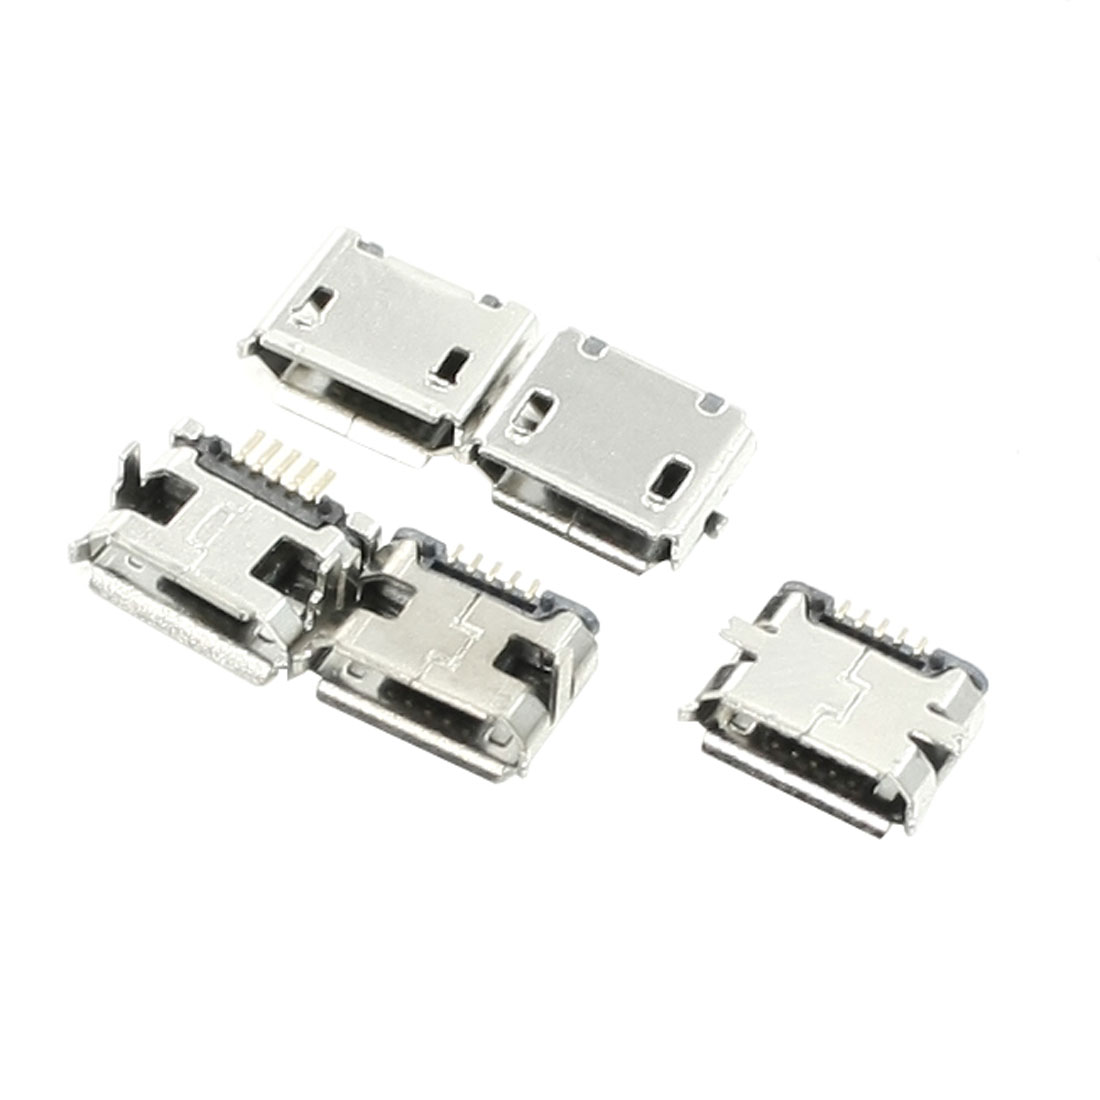 Computer Metal Micro USB Type B Female Connector 5 Pin SMT PCB Mount Port 5 Pcs